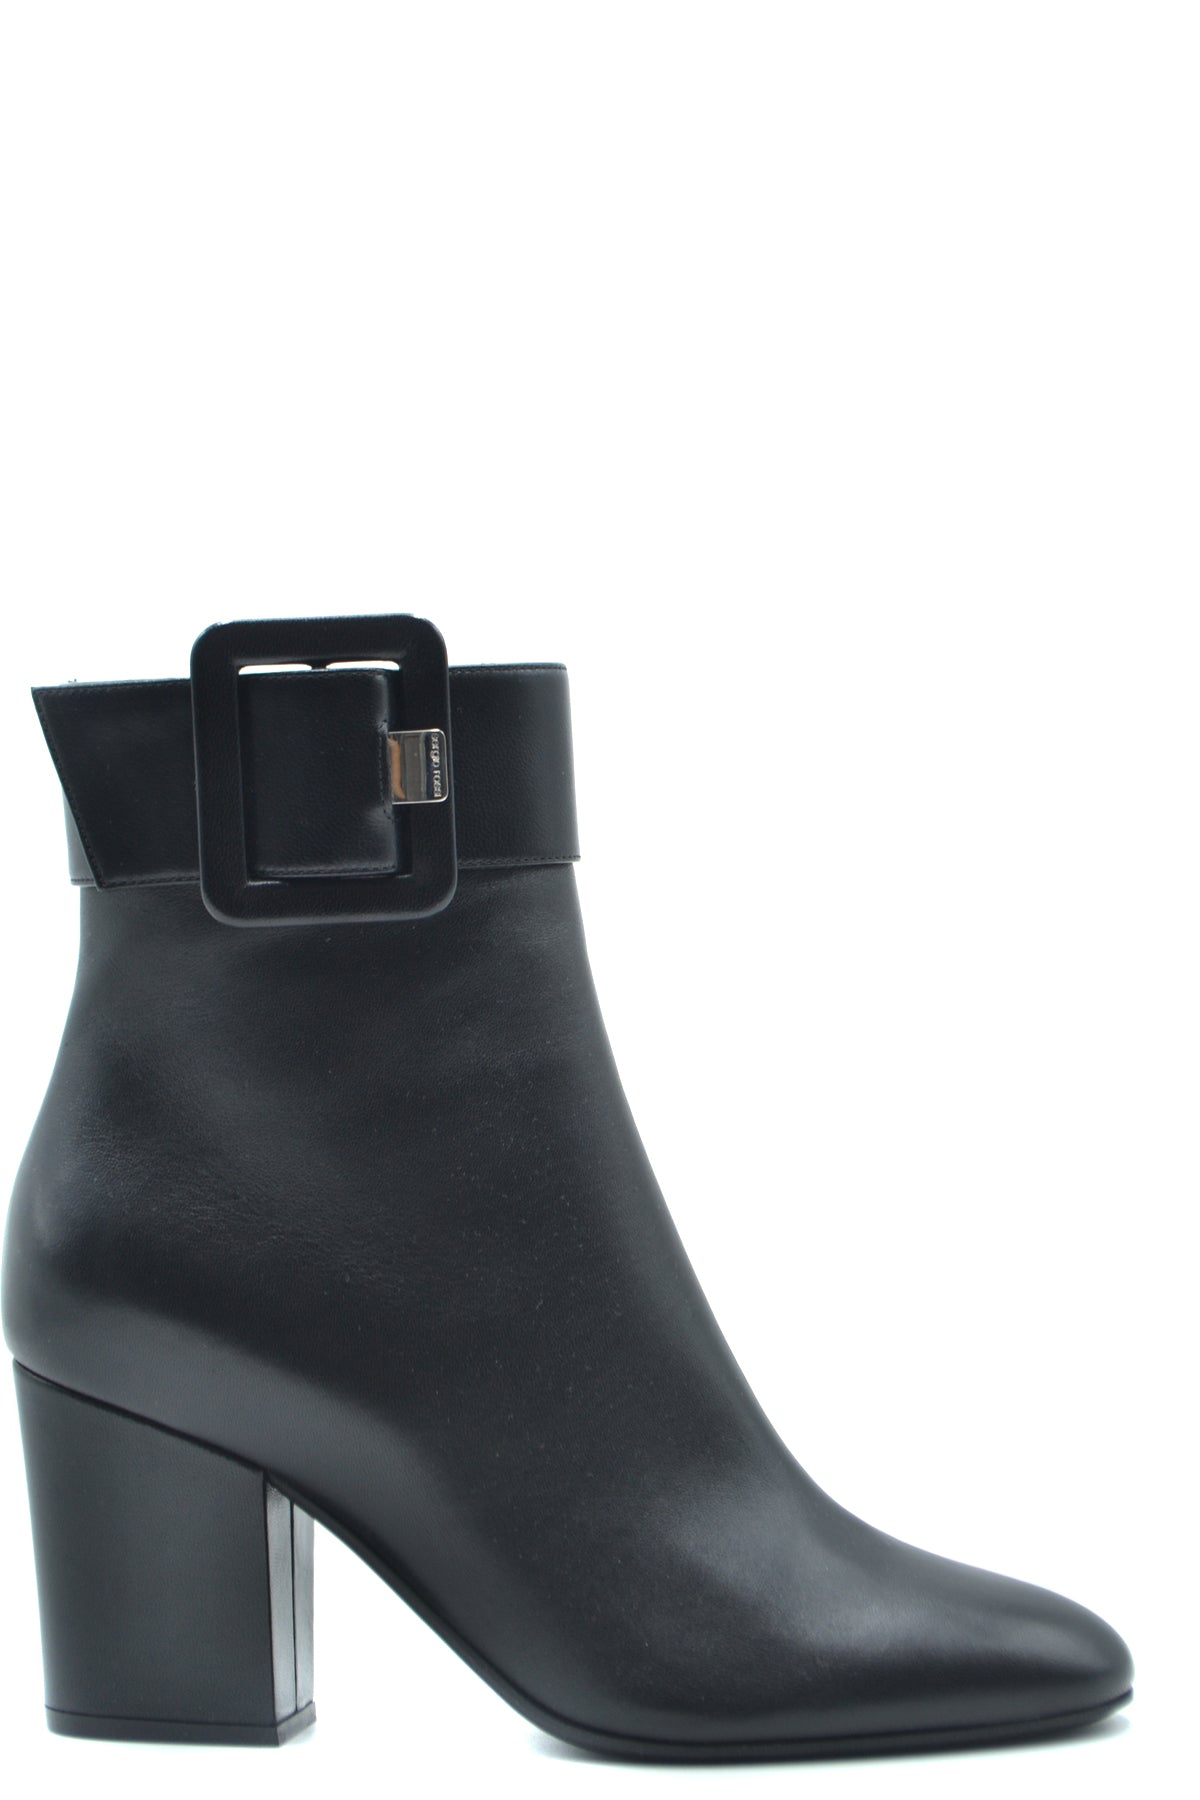 Shoes Sergio Rossi-Women's Fashion - Women's Shoes - Women's Boots-35.5-Product Details Terms: New With LabelMain Color: BlackType Of Accessory: BootsSeason: Fall / WinterMade In: ItalyGender: WomanHeel'S Height: 7,5Size: EuComposition: Leather 100%Year: 2020Manufacturer Part Number: A85851 Mnan07 1000-Keyomi-Sook